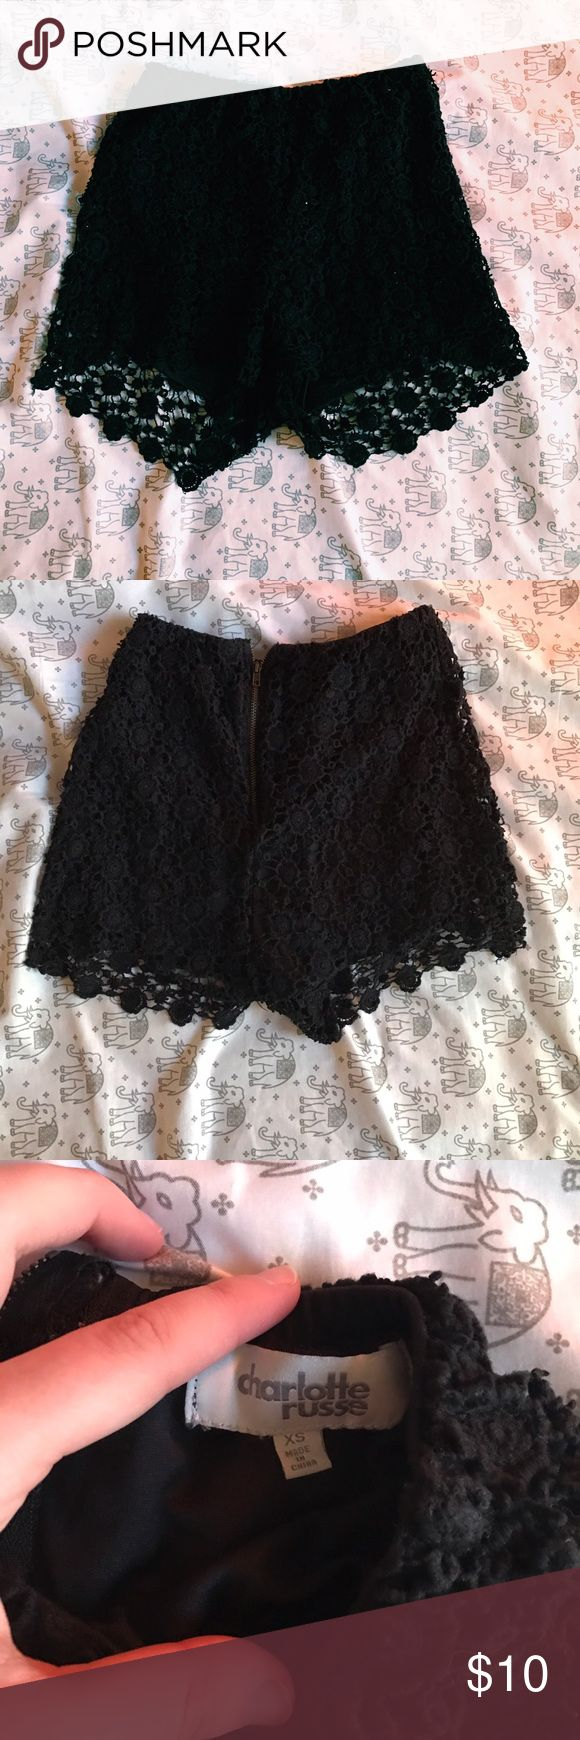 Black Lace Crochet Shorts • I'll model anything if you just ask!  • Prices negotiable  • No trades!  • Happy poshing! Charlotte Russe Shorts